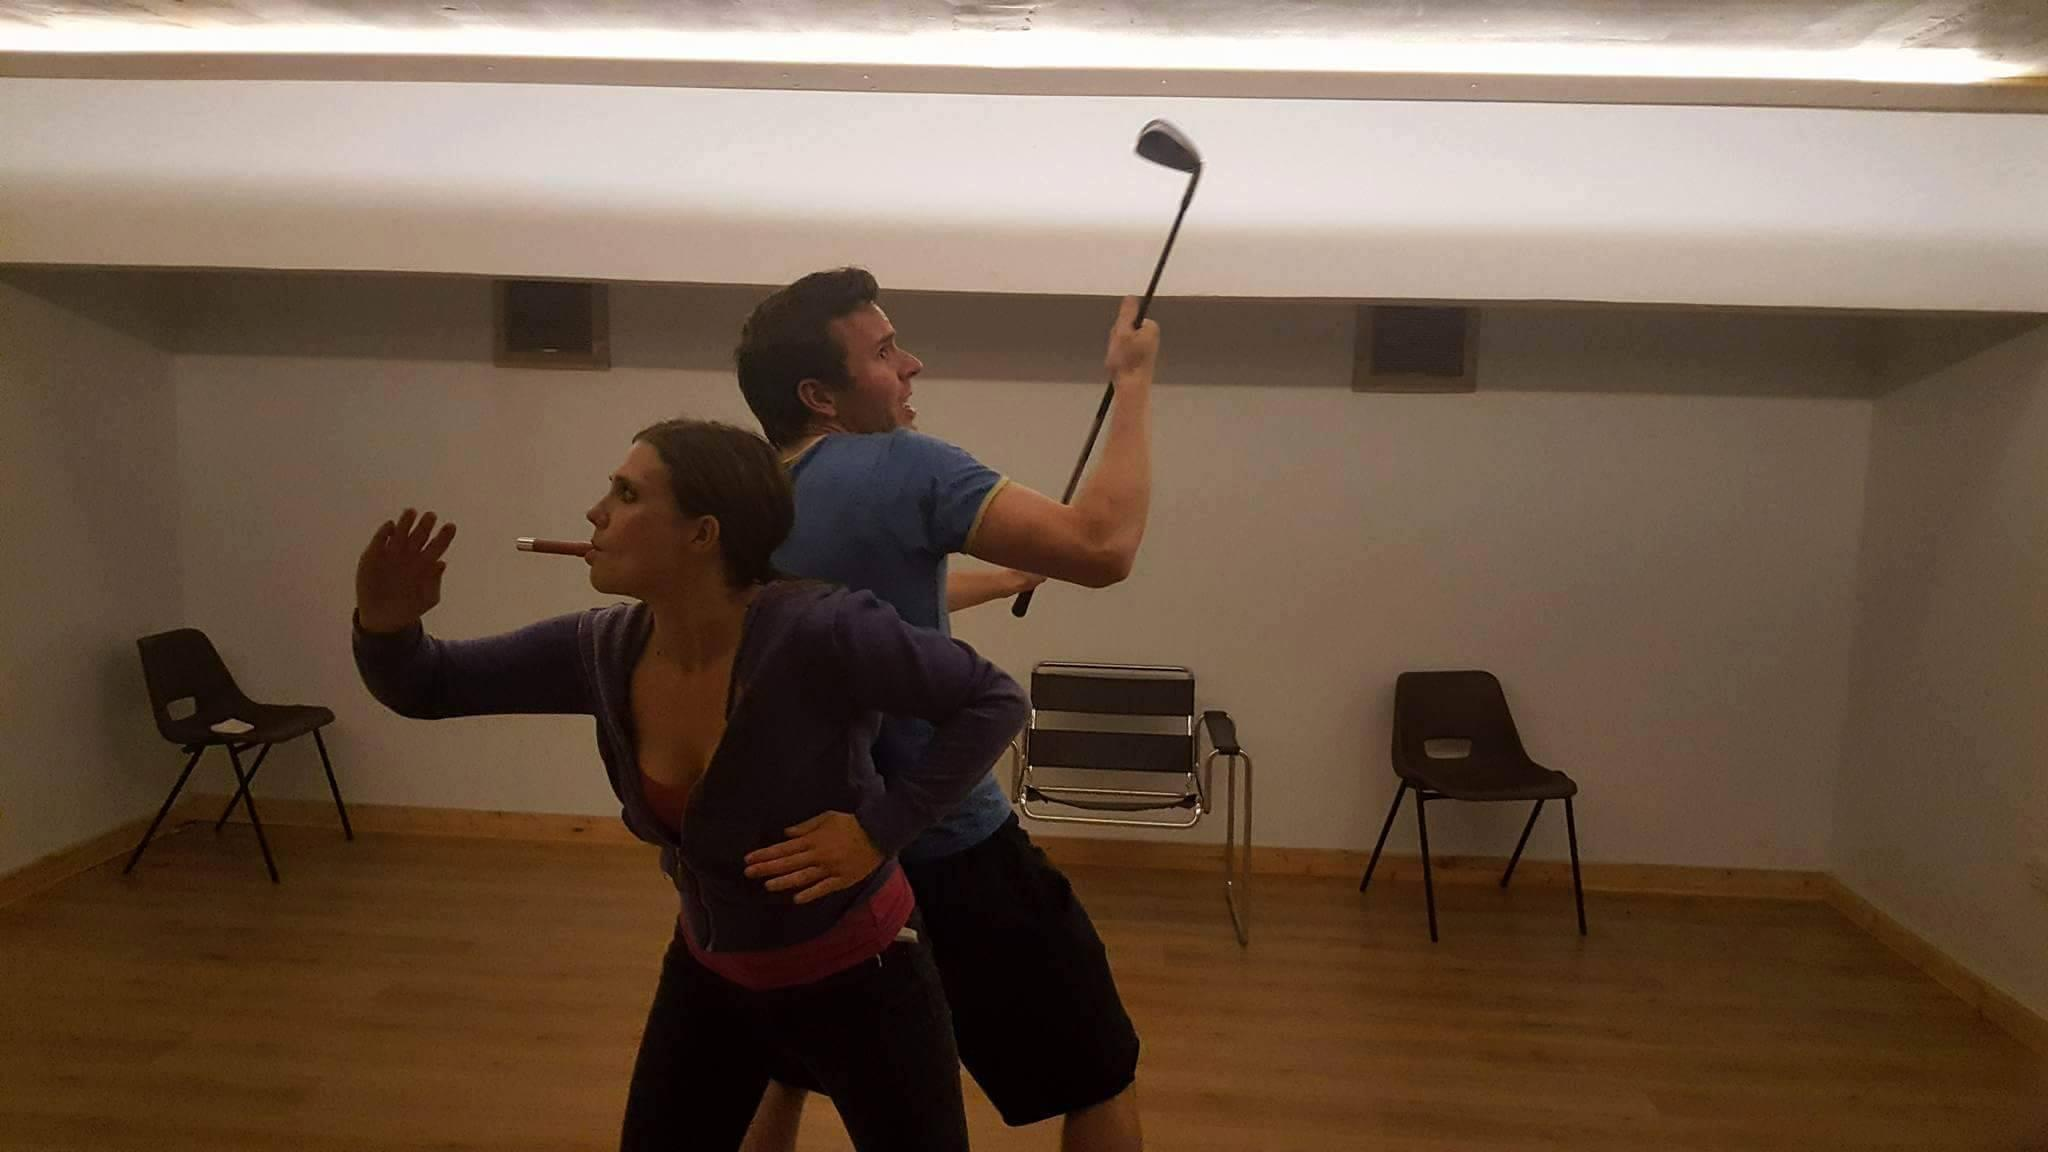 Jasmine Atkins-Smart and Ellis J. Wells, rehearsing for The Accidental Adventures of Sherlock Holmes